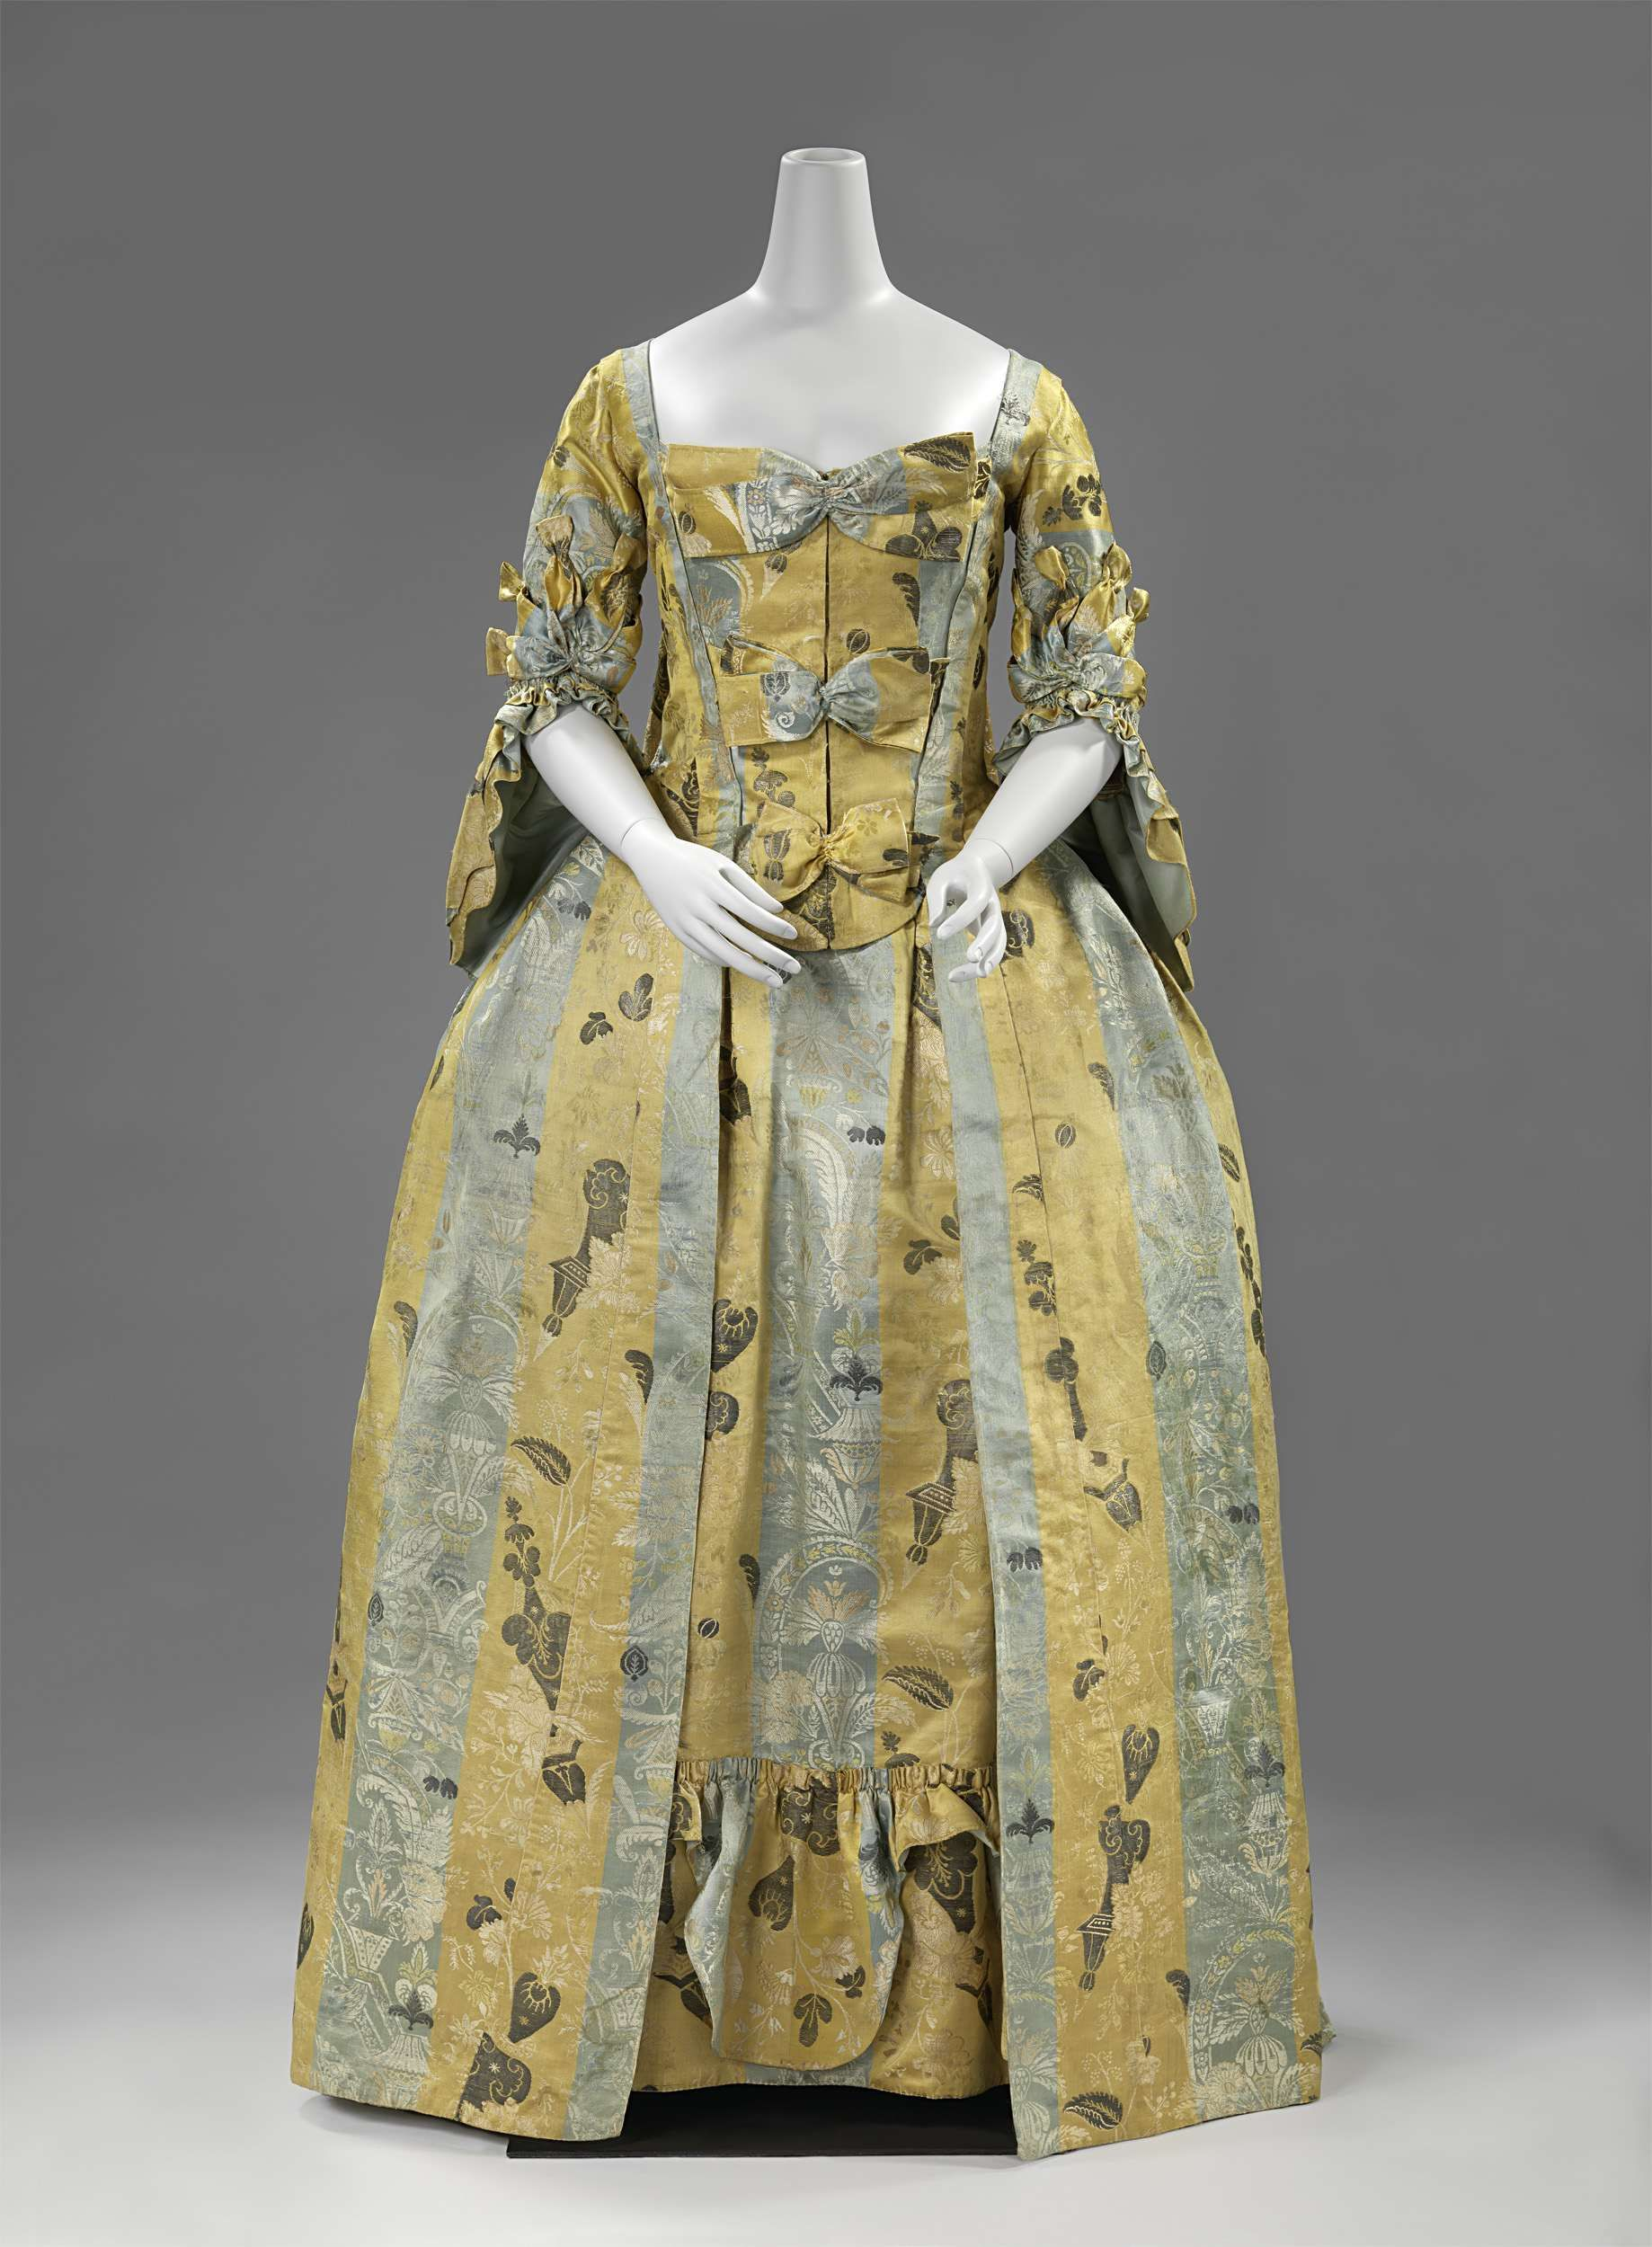 1715-1720 Gown